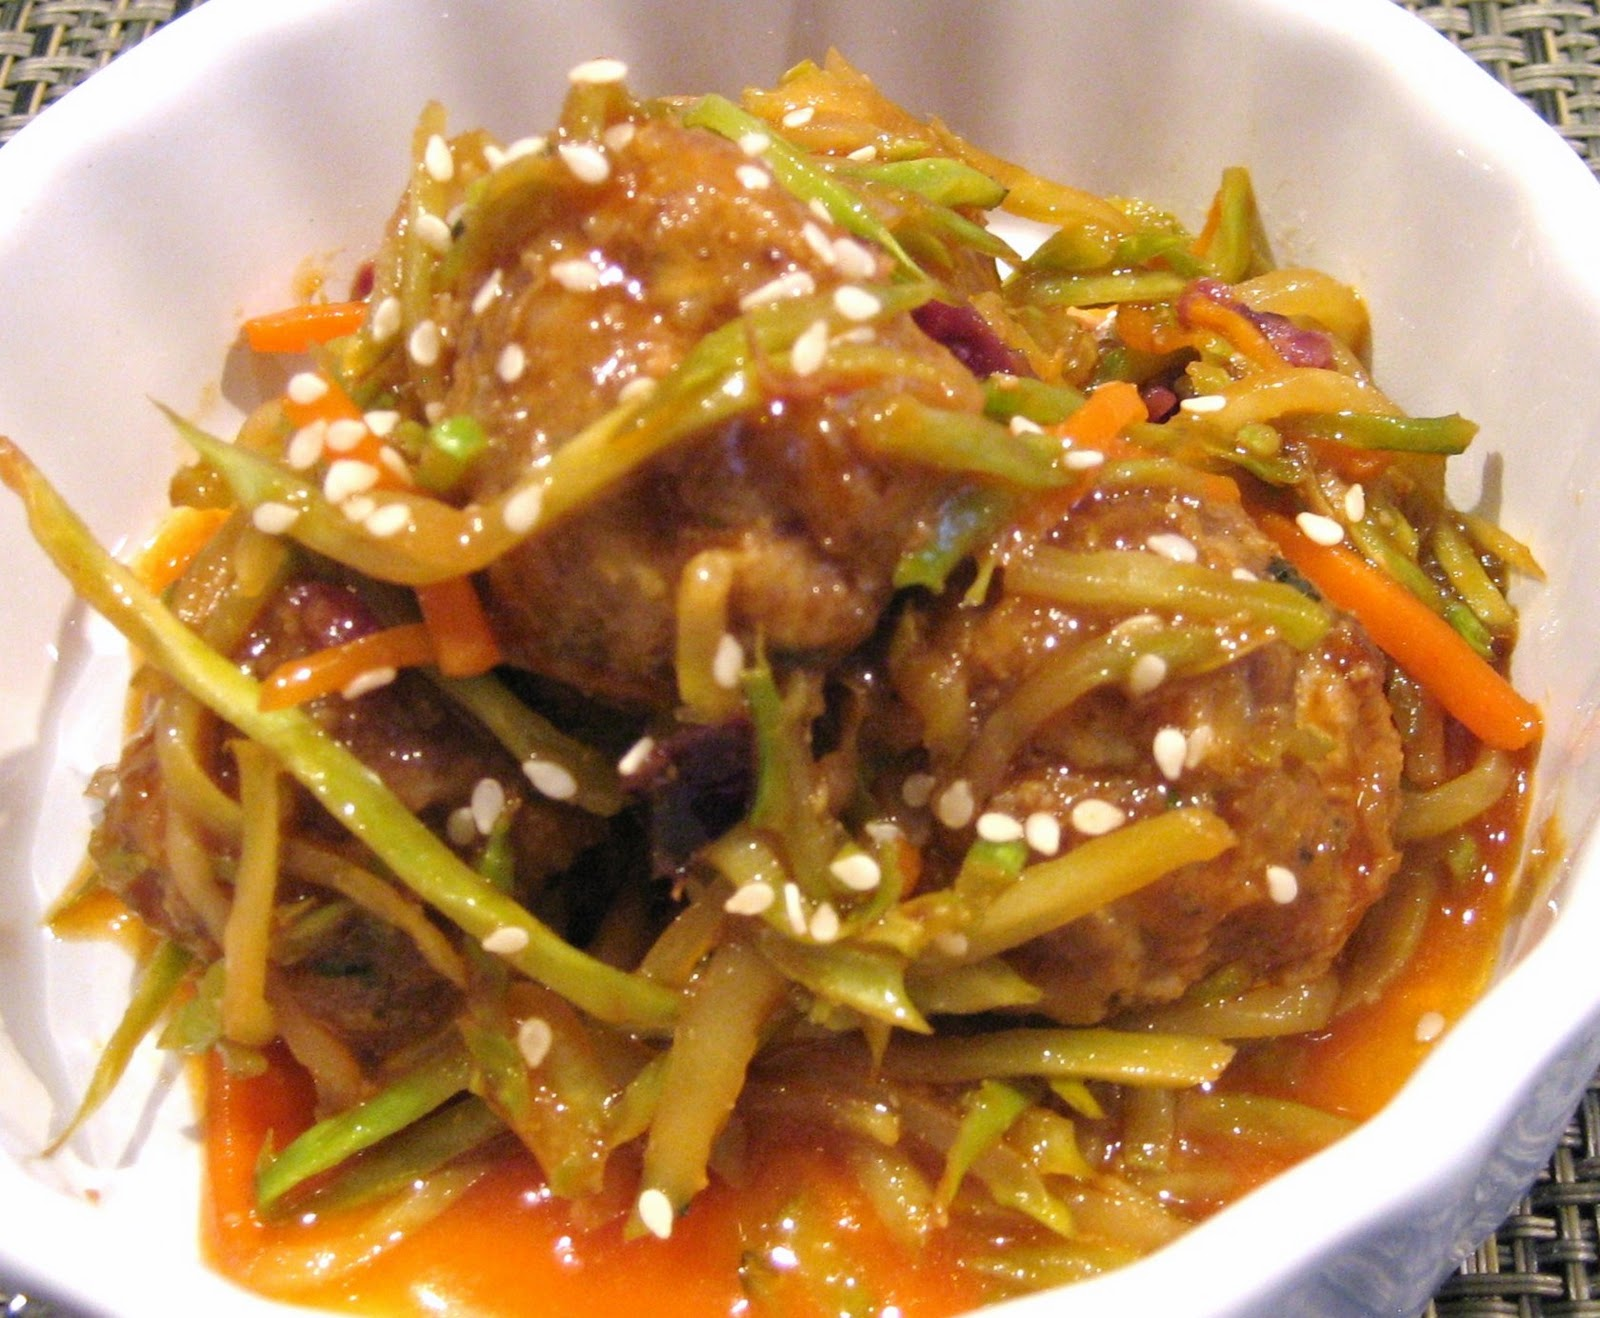 ... : Meatballs in a Sweet 'n Spicy Asian Sauce with Warm Asian Slaw